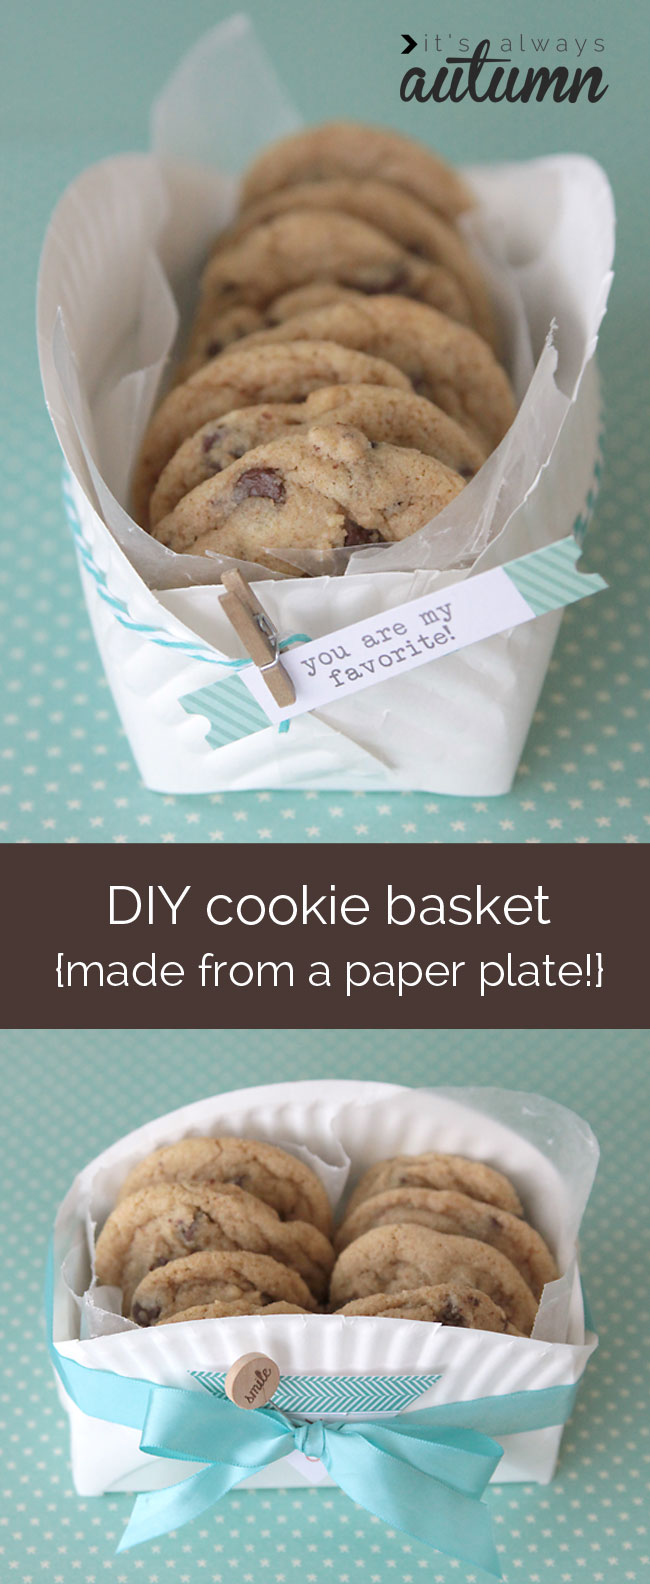 Easy Diy Cookie Basket Made From A Paper Plate It S Always Autumn